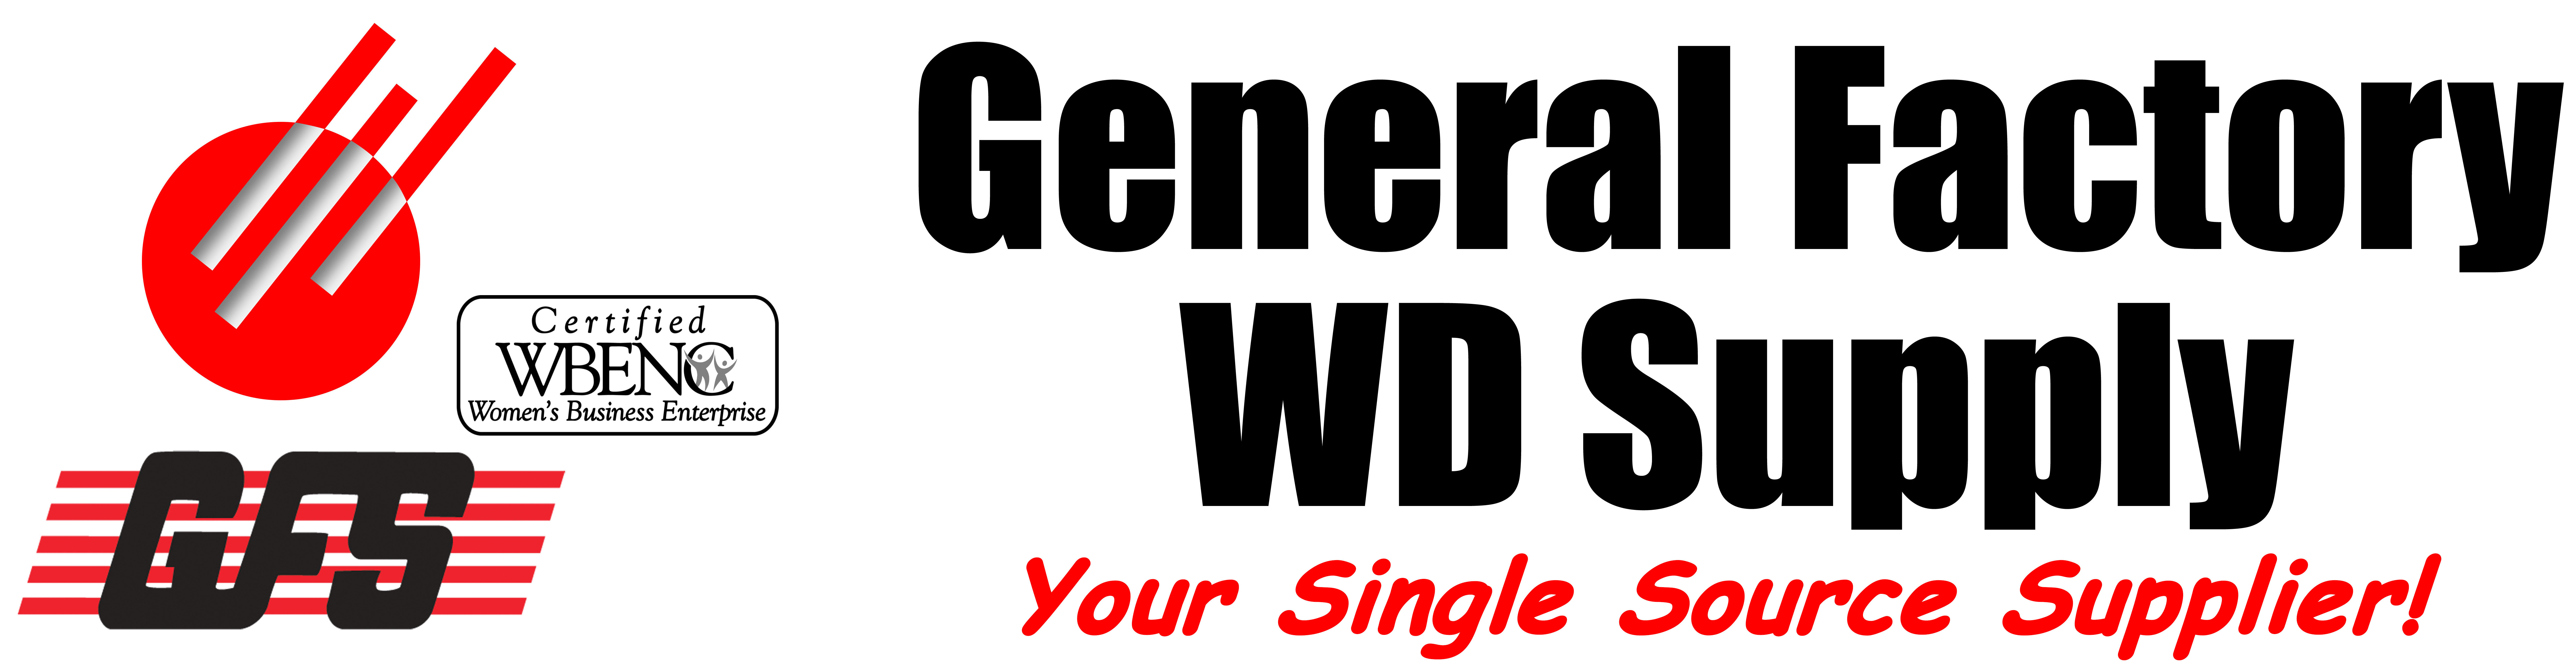 General Factory WD Supply